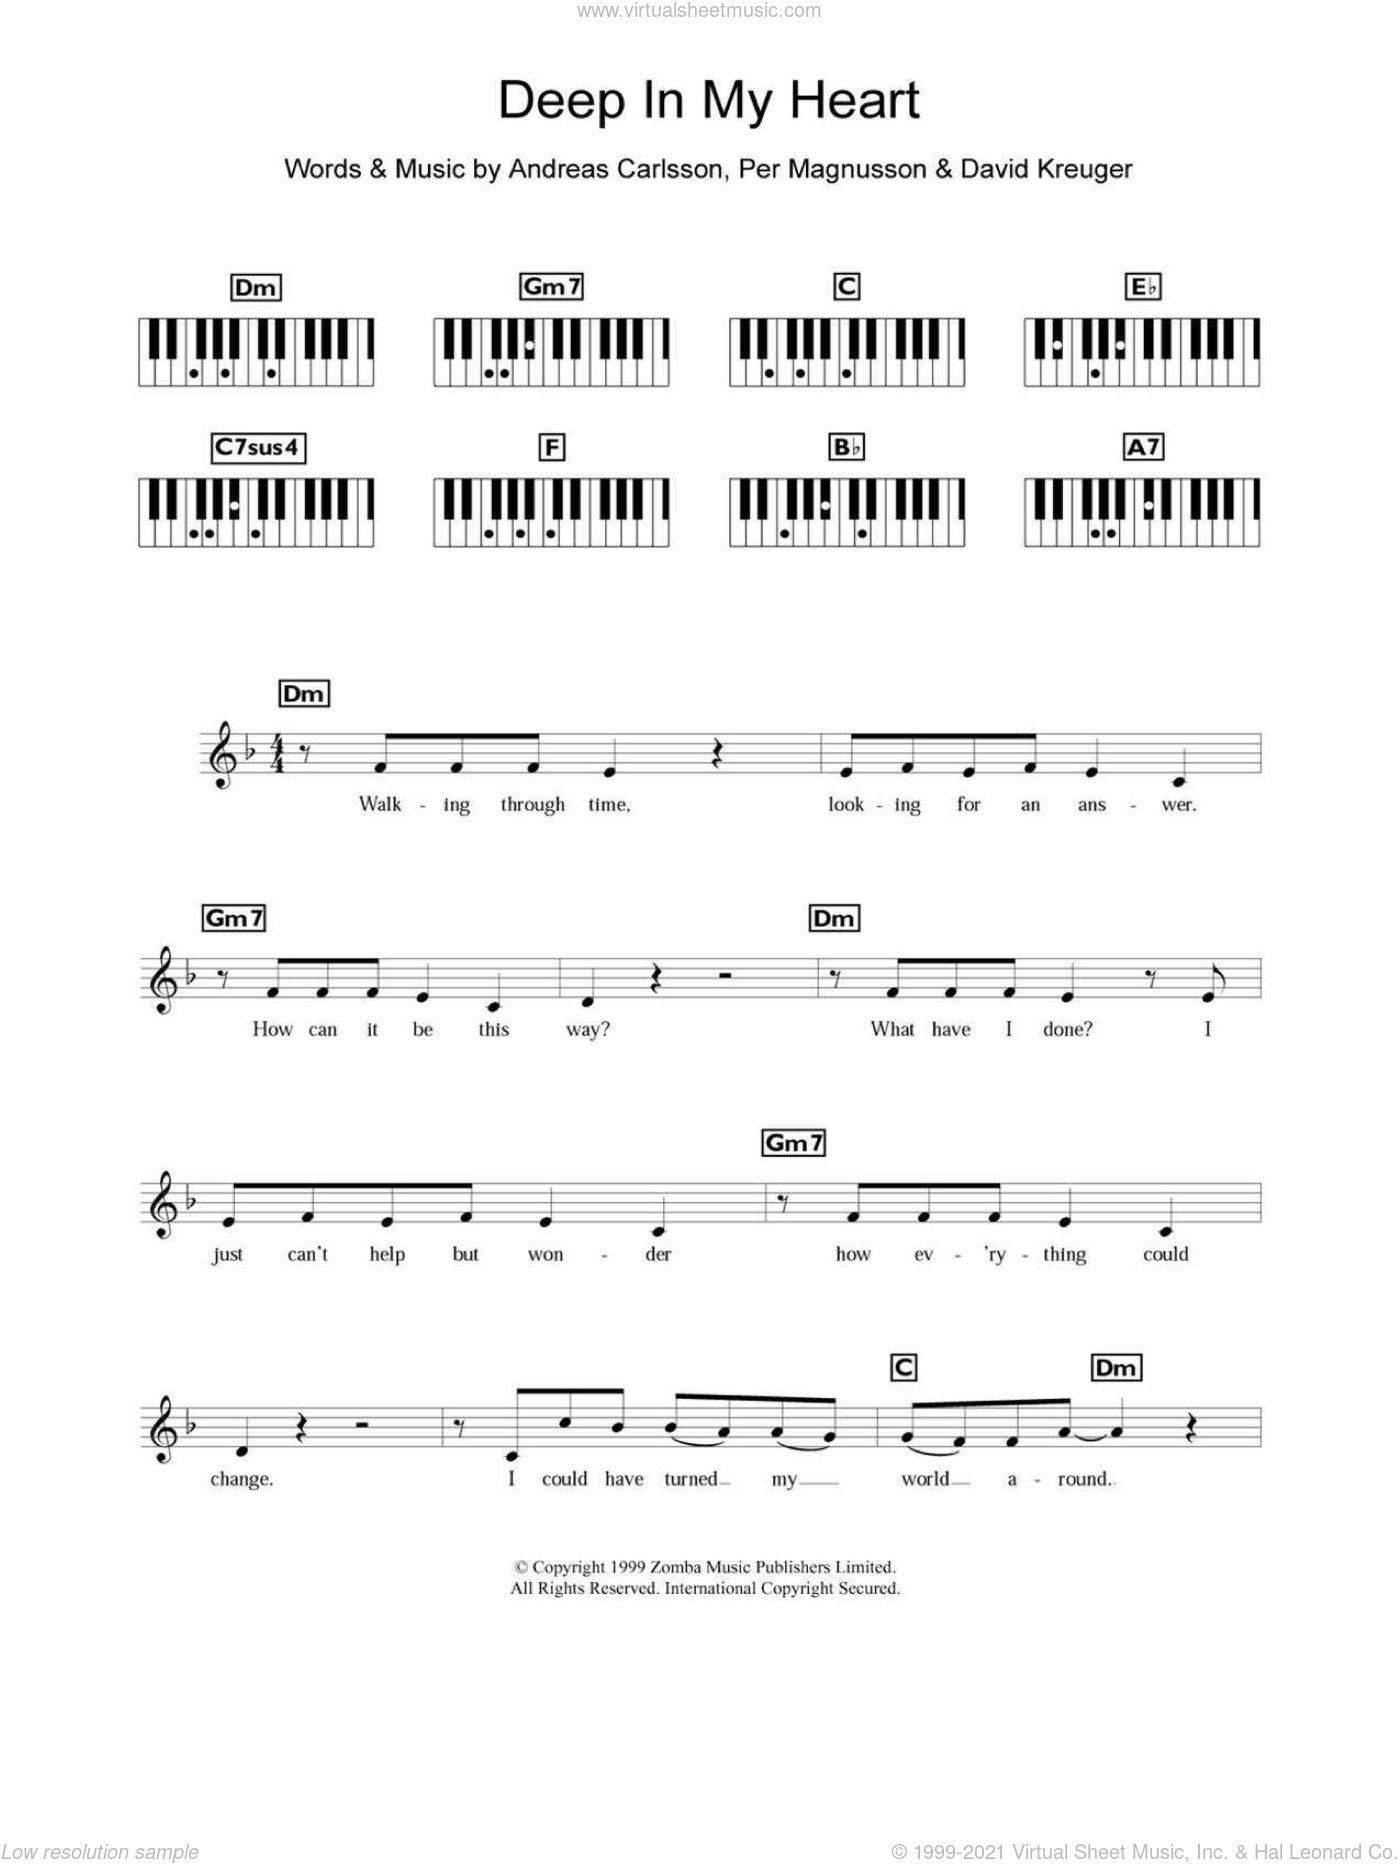 Deep In My Heart sheet music for piano solo (chords, lyrics, melody) by Per Magnusson